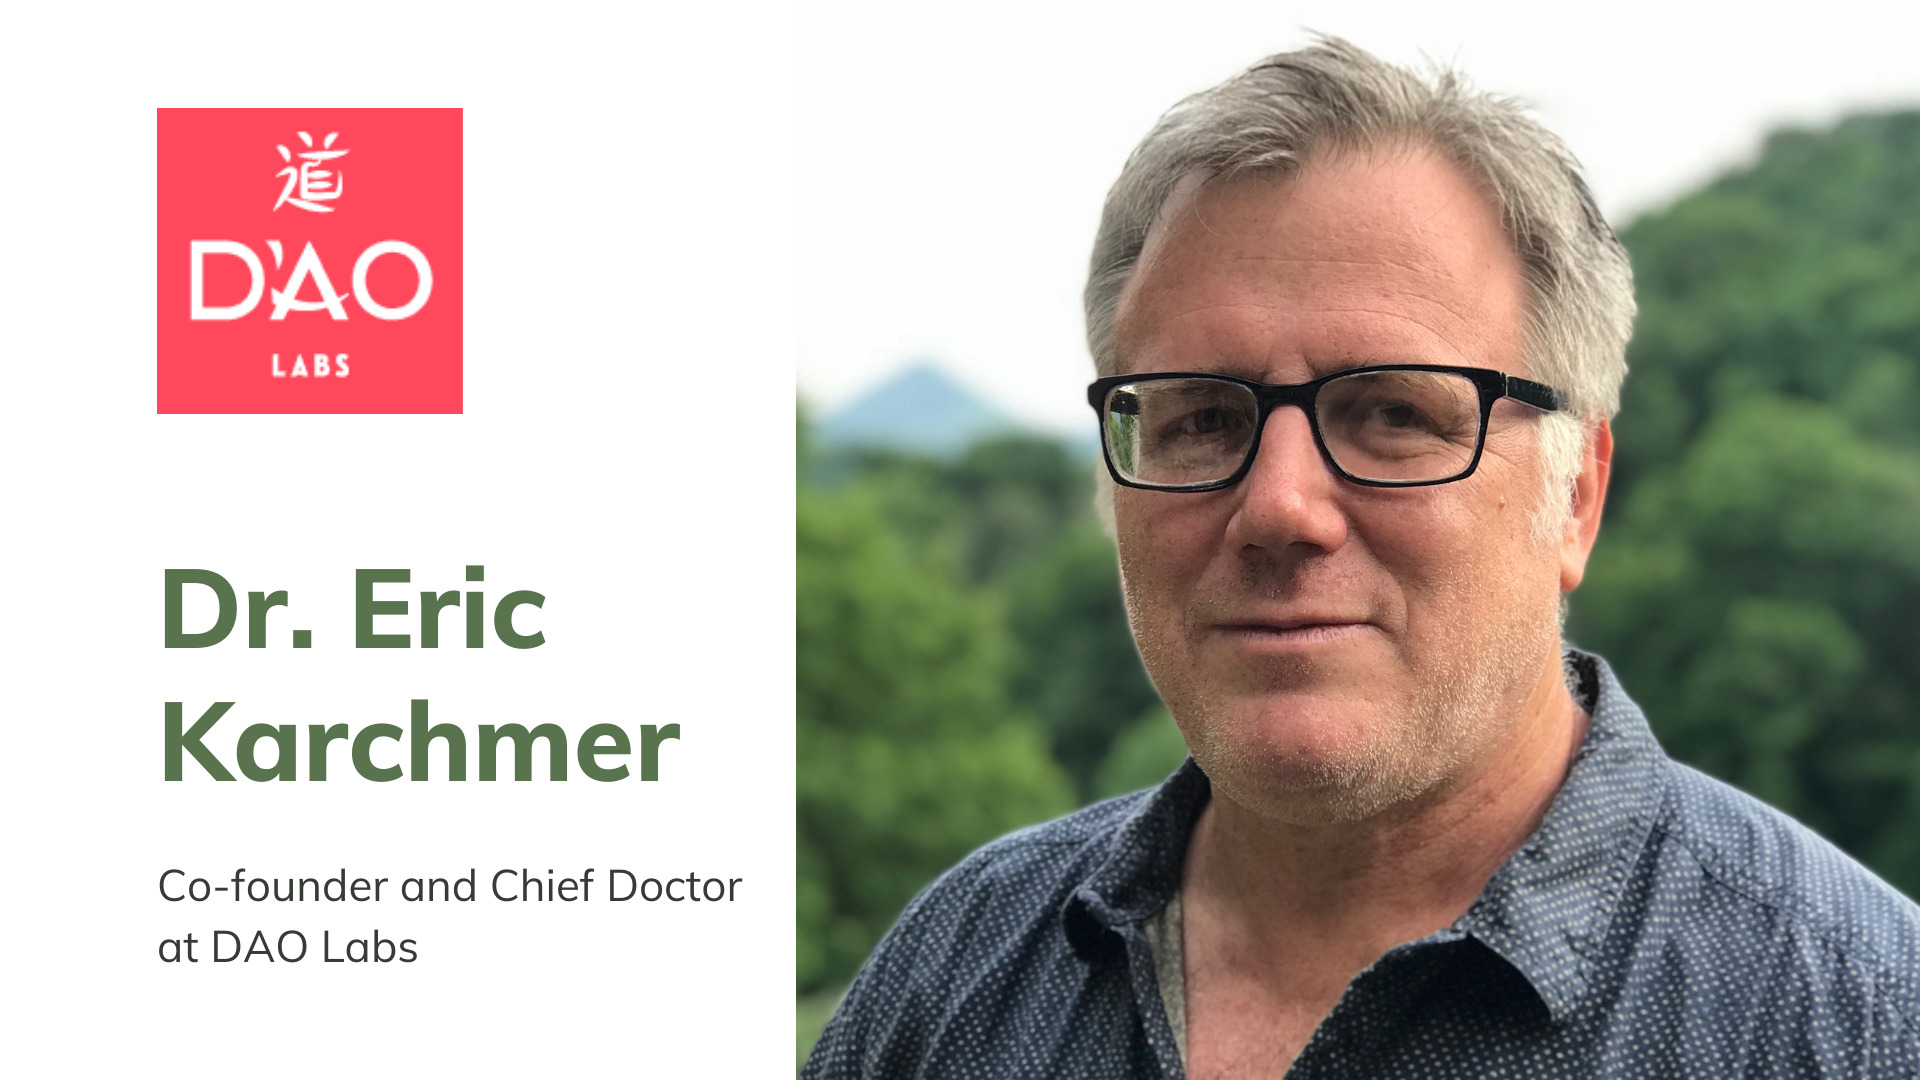 Dr. Eric Karchmer, Co-founder and Chief Doctor at DAO Labs.